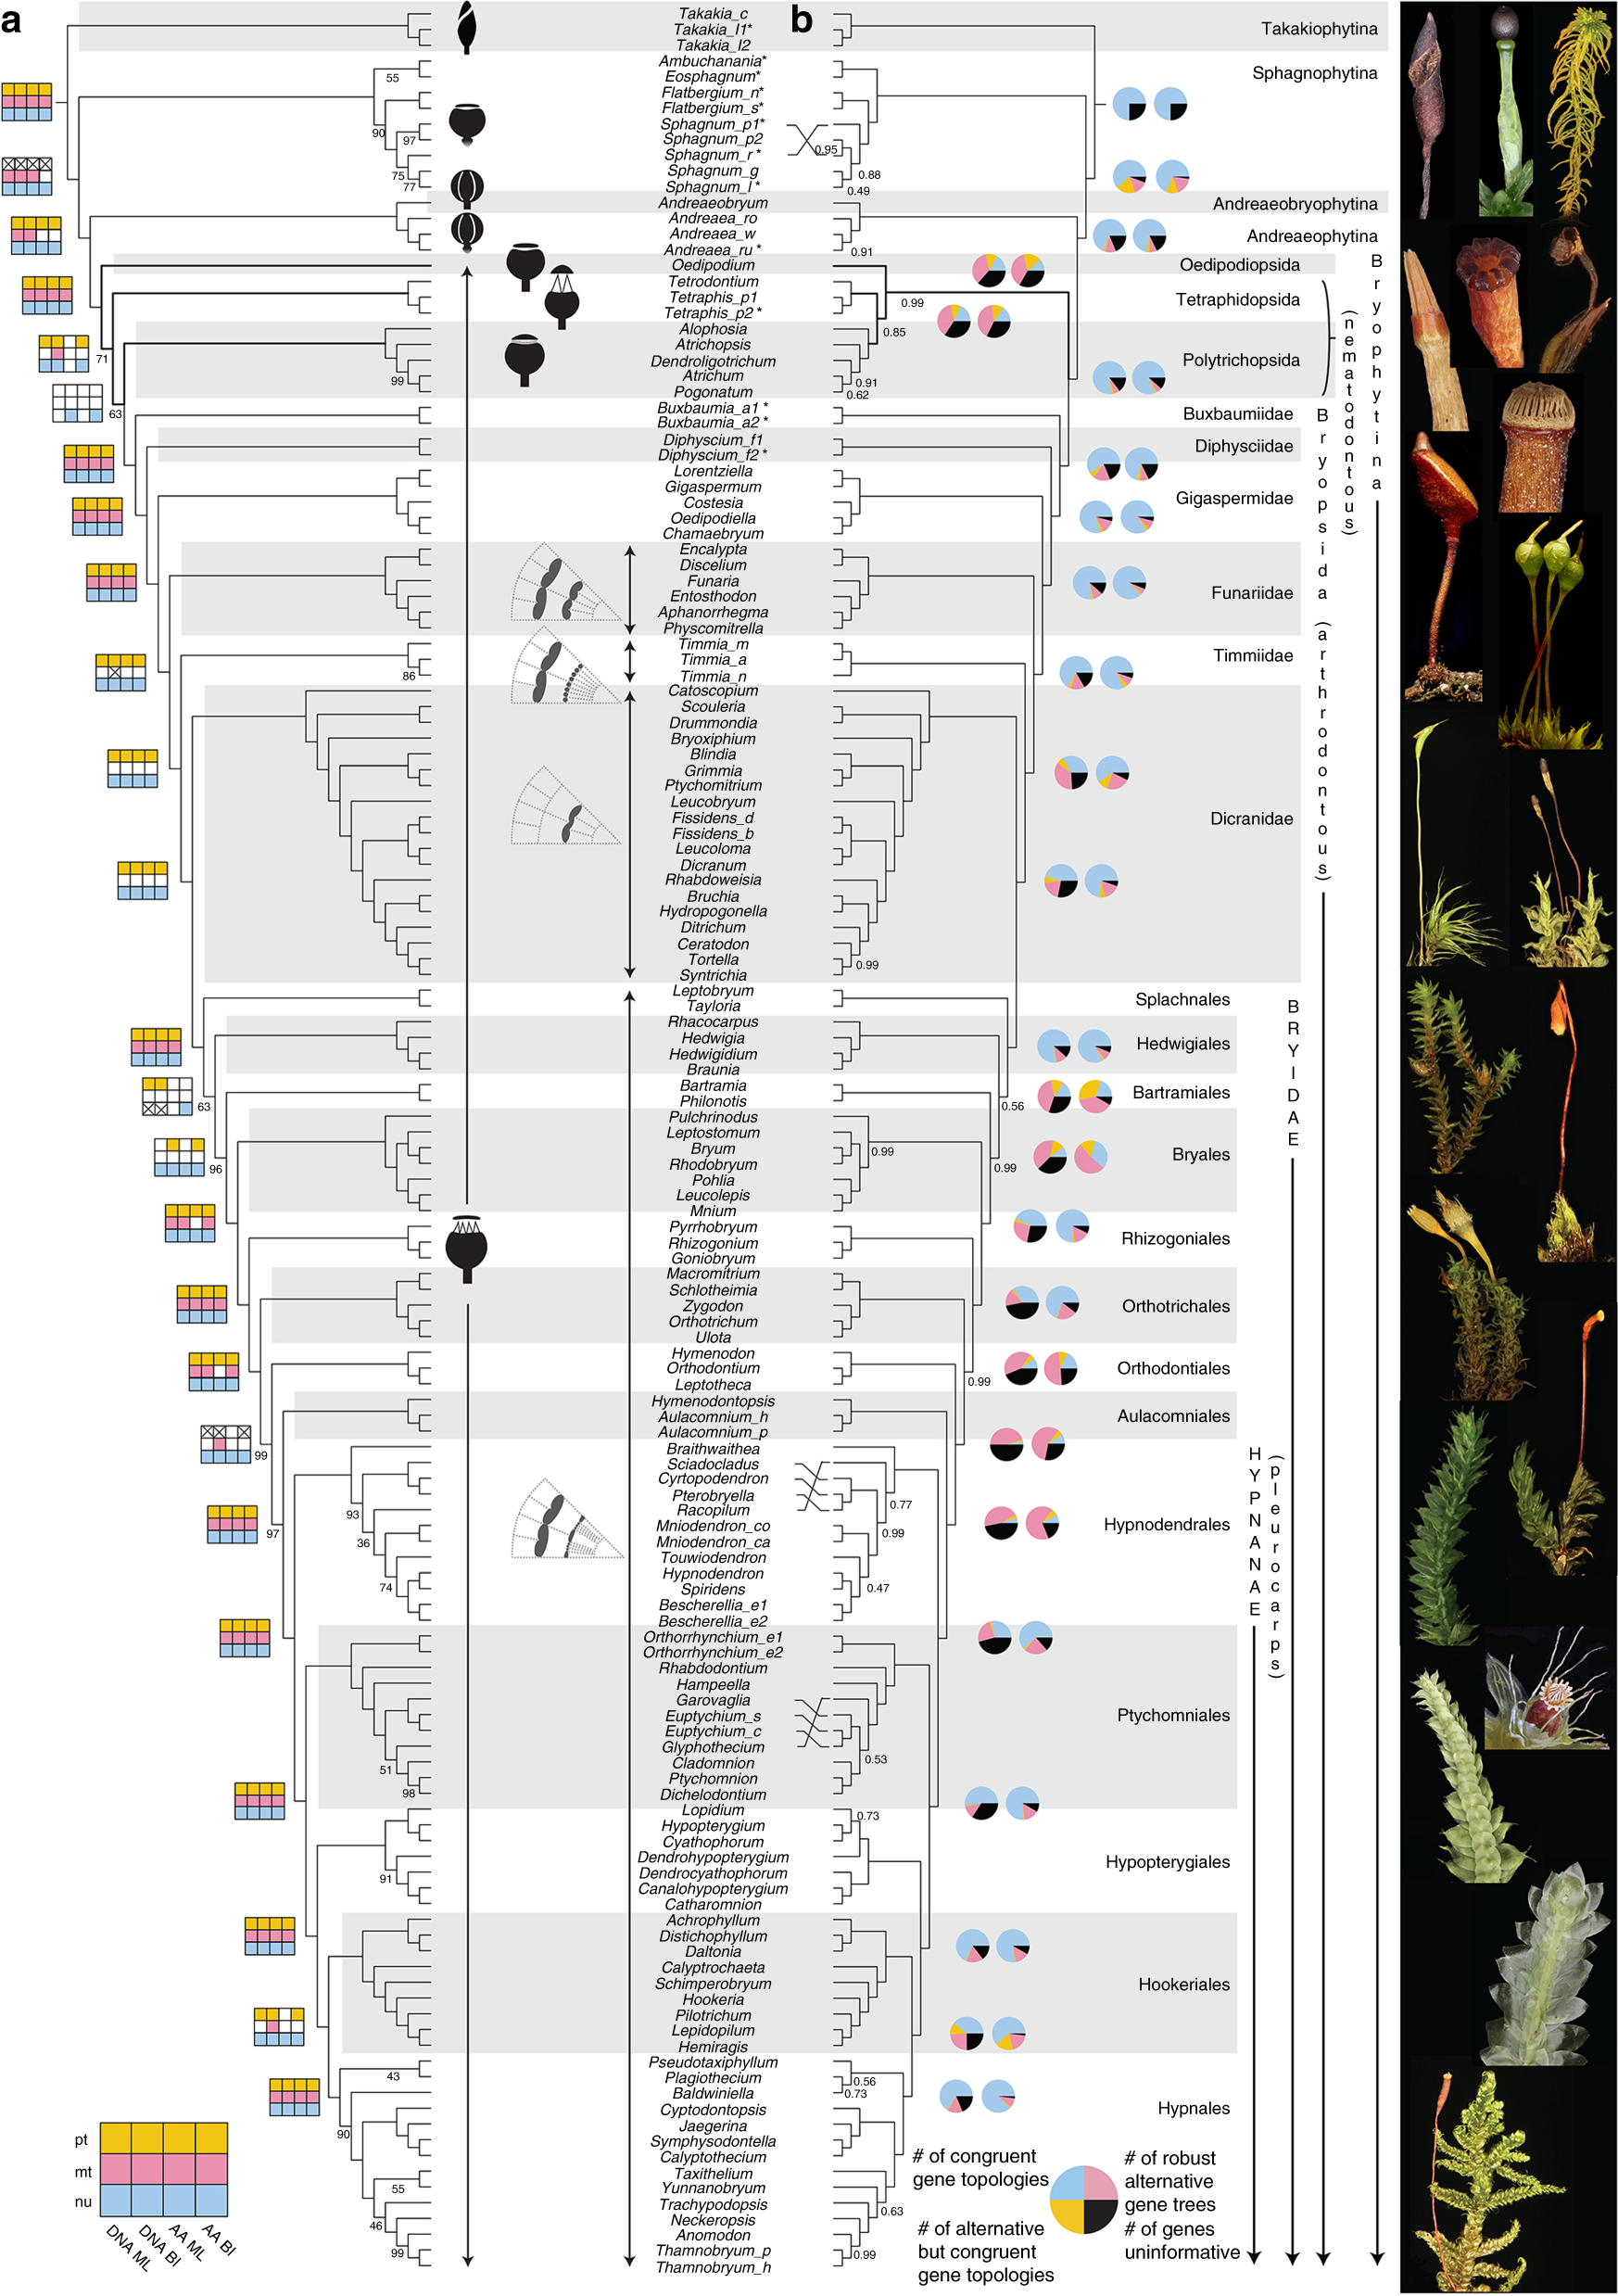 Resolution of the ordinal phylogeny of mosses using targeted